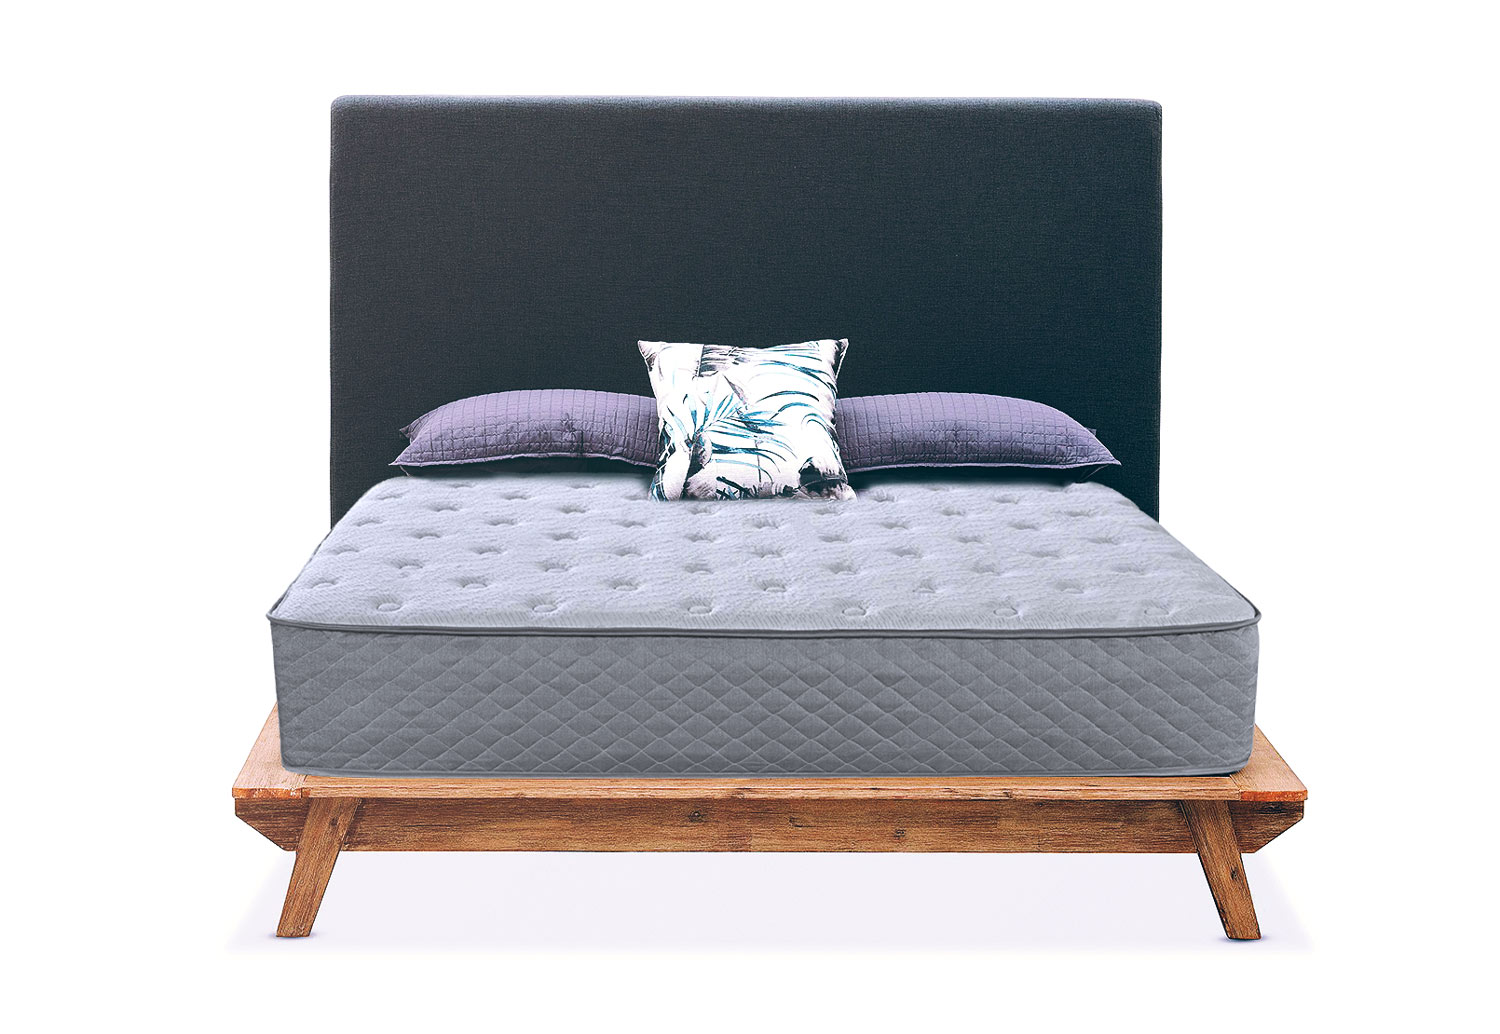 BUY A  FIN 14  HYBRID MATTRESS AND SAVE $300 with Promo Code  FIN300